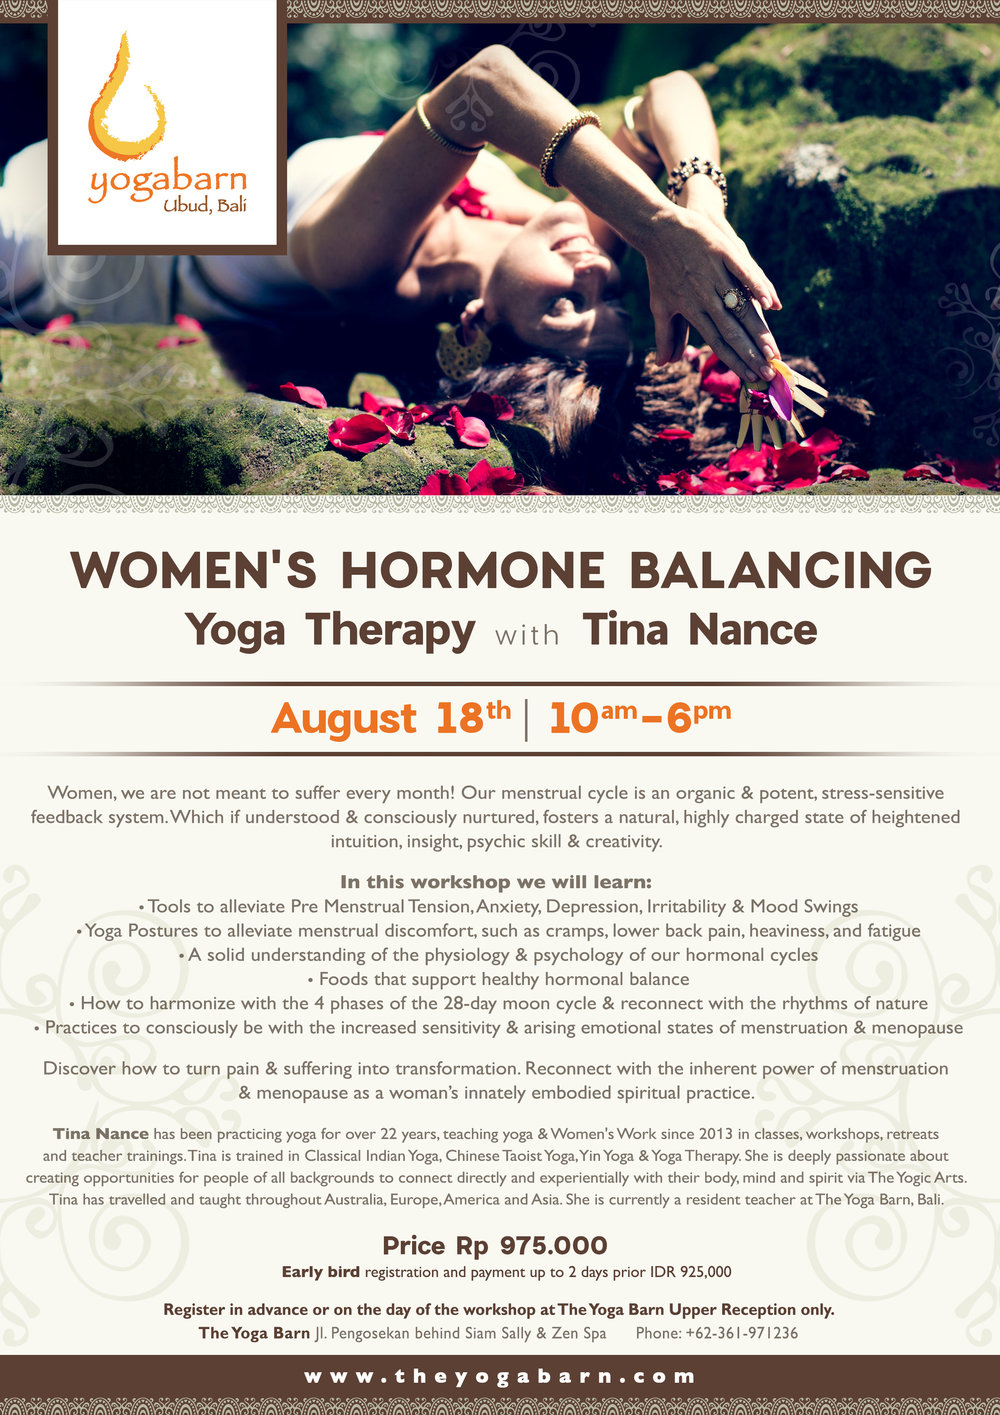 - Yoga Therapy: Women's Hormone Balancing with Tina NanceAugust 18, 2018 10:00am - 6:00pmRp 975.000. Early Bird registration and payment up to 2 days prior Rp 925.000Women, we are not meant to suffer every month! Our menstrual cycle is an organic & potent, stress-sensitive feedback system. Which if understood & consciously nurtured, fosters a natural, highly charged state of heightened intuition, insight, psychic skill & creativity.In this workshop we will learn:Tools to alleviate Pre Menstrual Tension, Anxiety, Depression, Irritability & Mood SwingsYoga Postures to alleviate menstrual discomfort, such as cramps, lower back pain, heaviness, and fatigueA solid understanding of physiology & psychology of our hormonal cyclesFoods that support healthy balanceHow to harmonise with 4 phases of the 28-day moon cycle & reconnect with the rhythms of naturePractices to consciously be with the increased sensitivity & arising emotional states of menstruation and menopauseDiscover how to turn pain & suffering into transformation. Reconnect with the inherent power of menstruation & menopause as a woman's innately embodied spiritual practice.